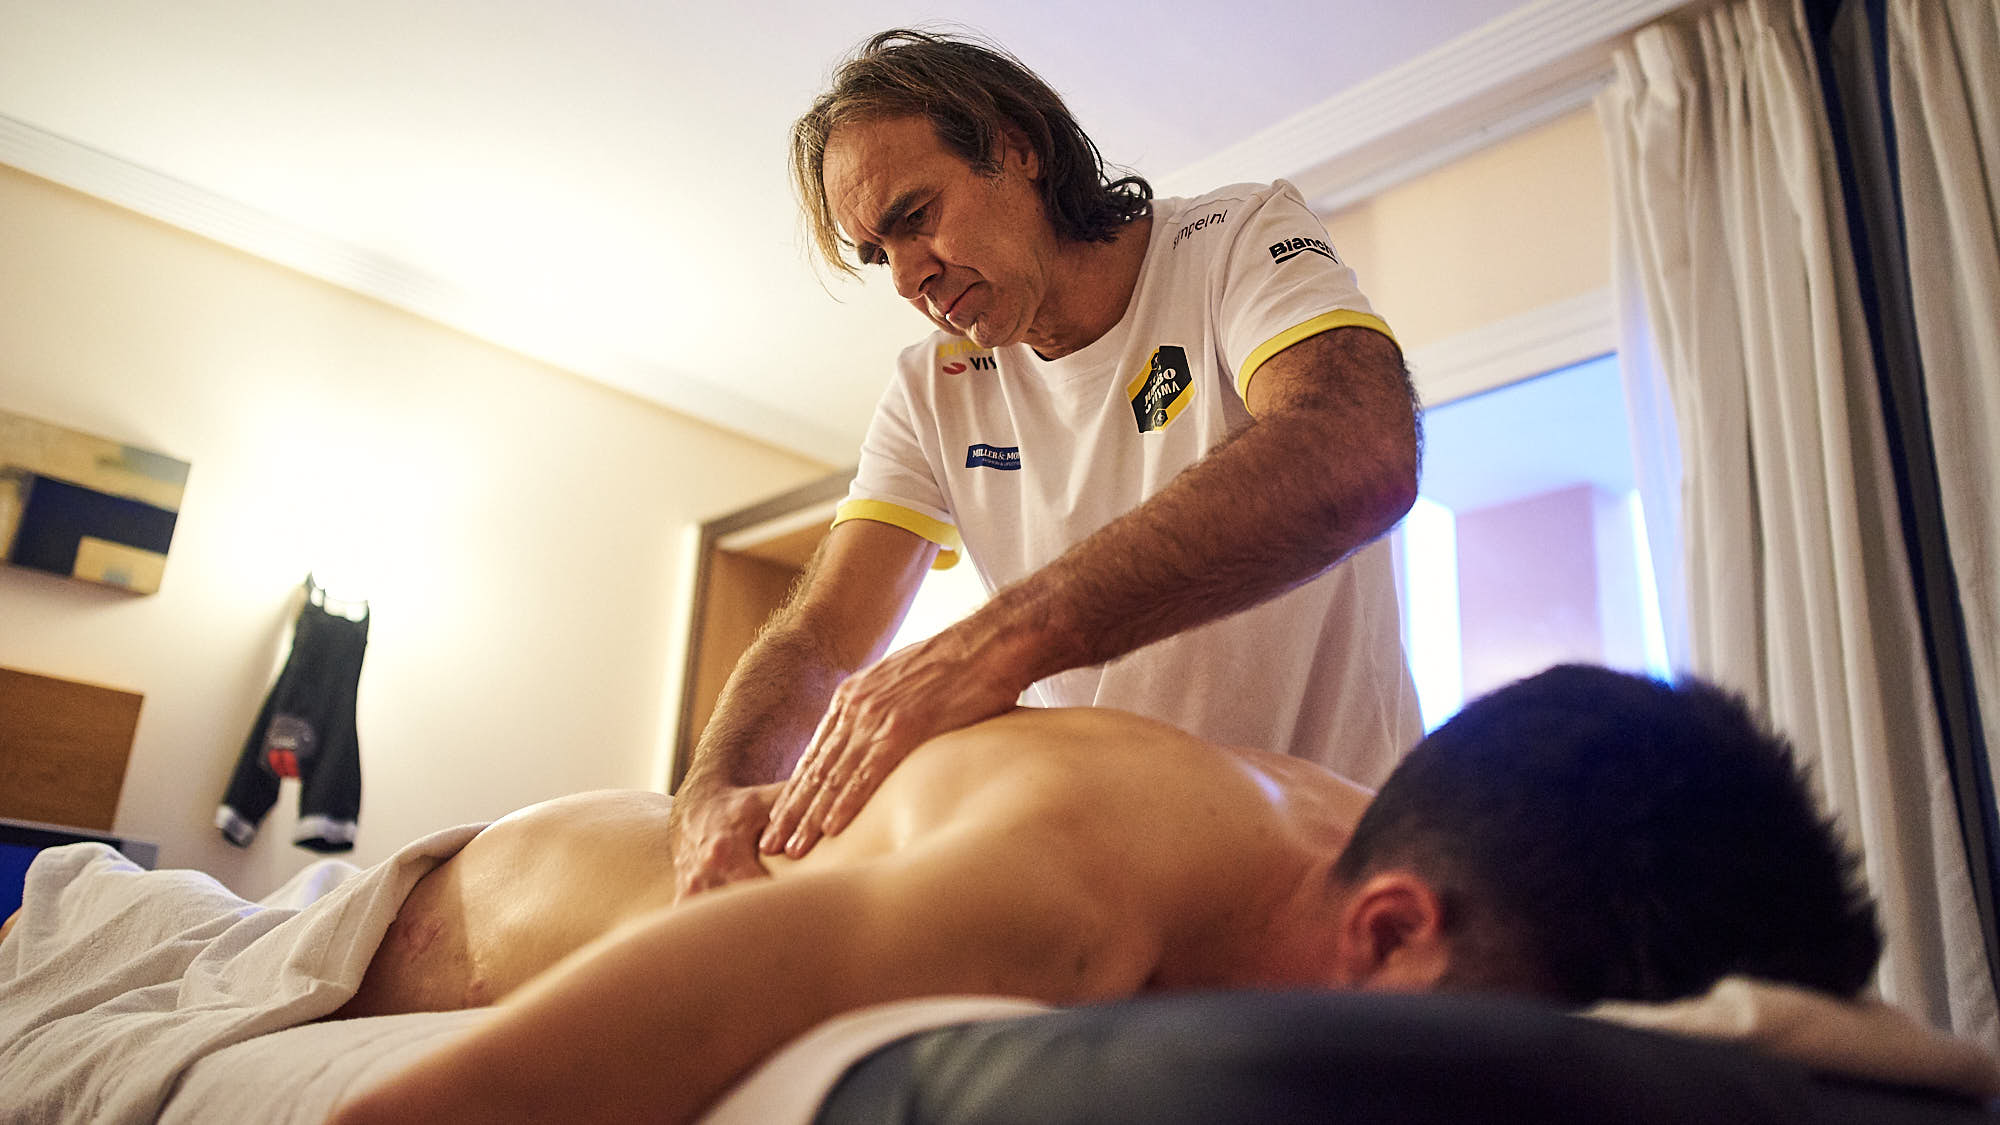 Soigneur at work, massaging a cyclist